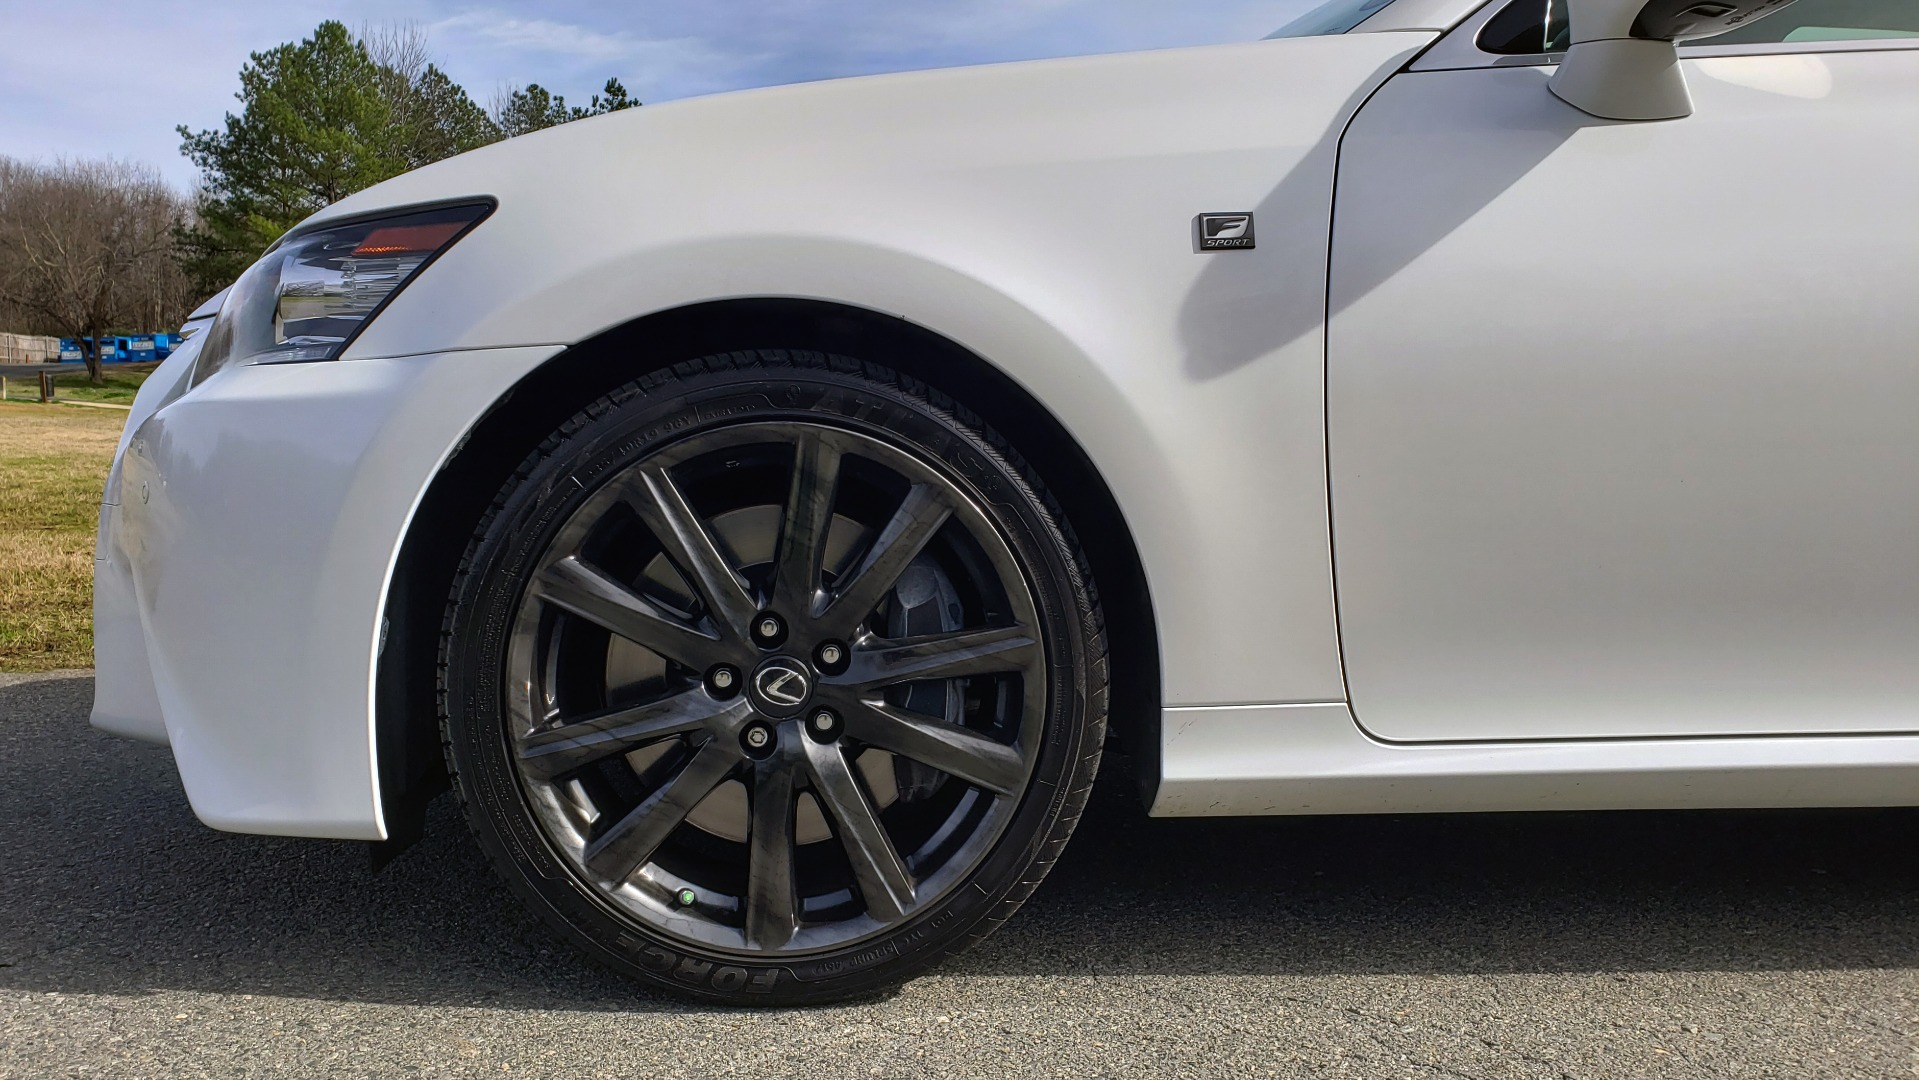 Used 2013 Lexus GS 350 F-SPORT / NAV / SUNROOF / BSM / PRK ASST / REARVIEW for sale Sold at Formula Imports in Charlotte NC 28227 76